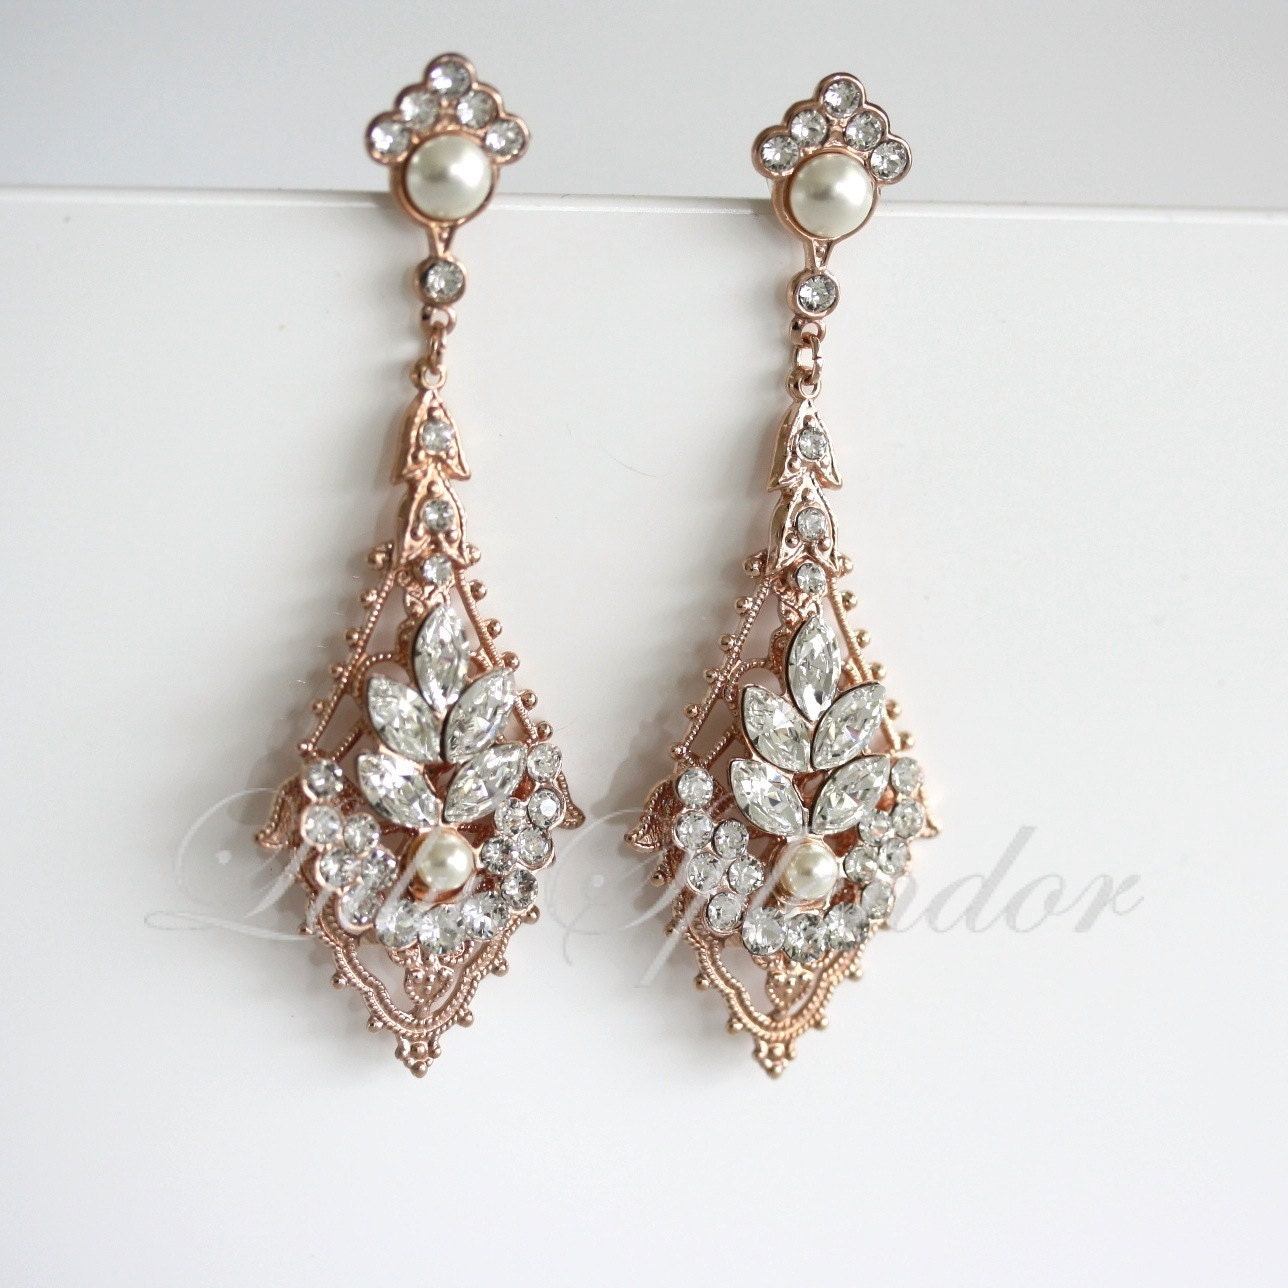 rose gold wedding earrings chandelier bridal earrings. Black Bedroom Furniture Sets. Home Design Ideas